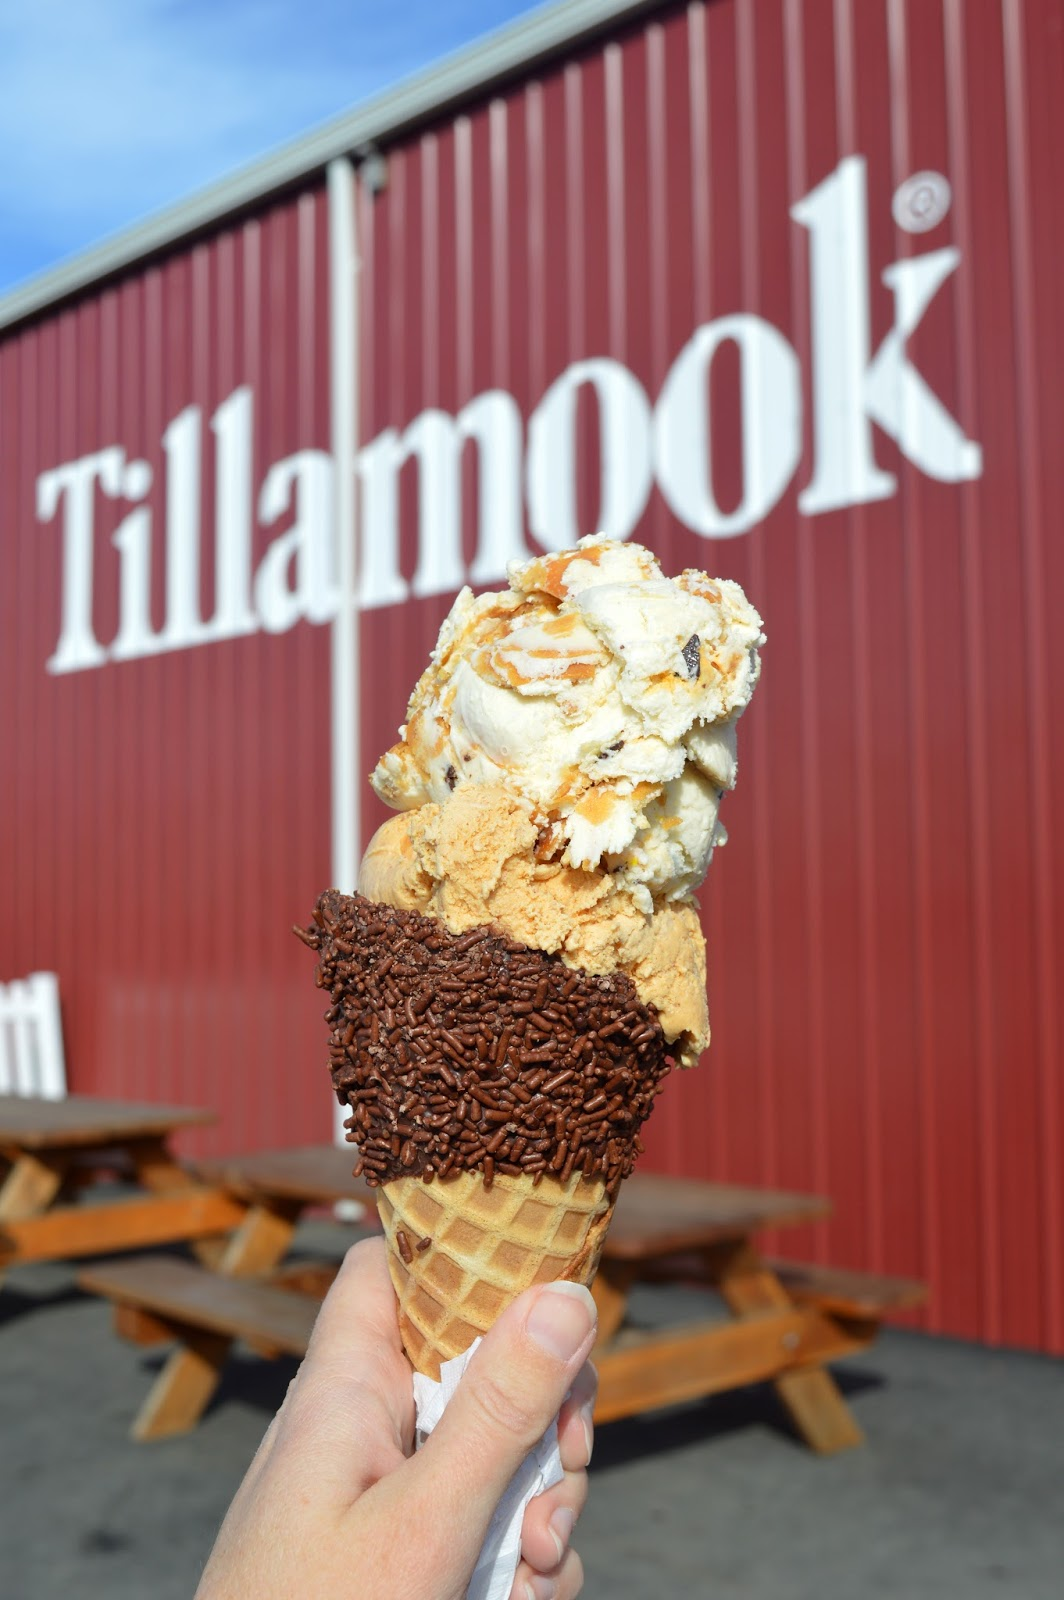 See The Tillamook Cheese Factorys Site Here For More About Factory And When It Will Be Completed